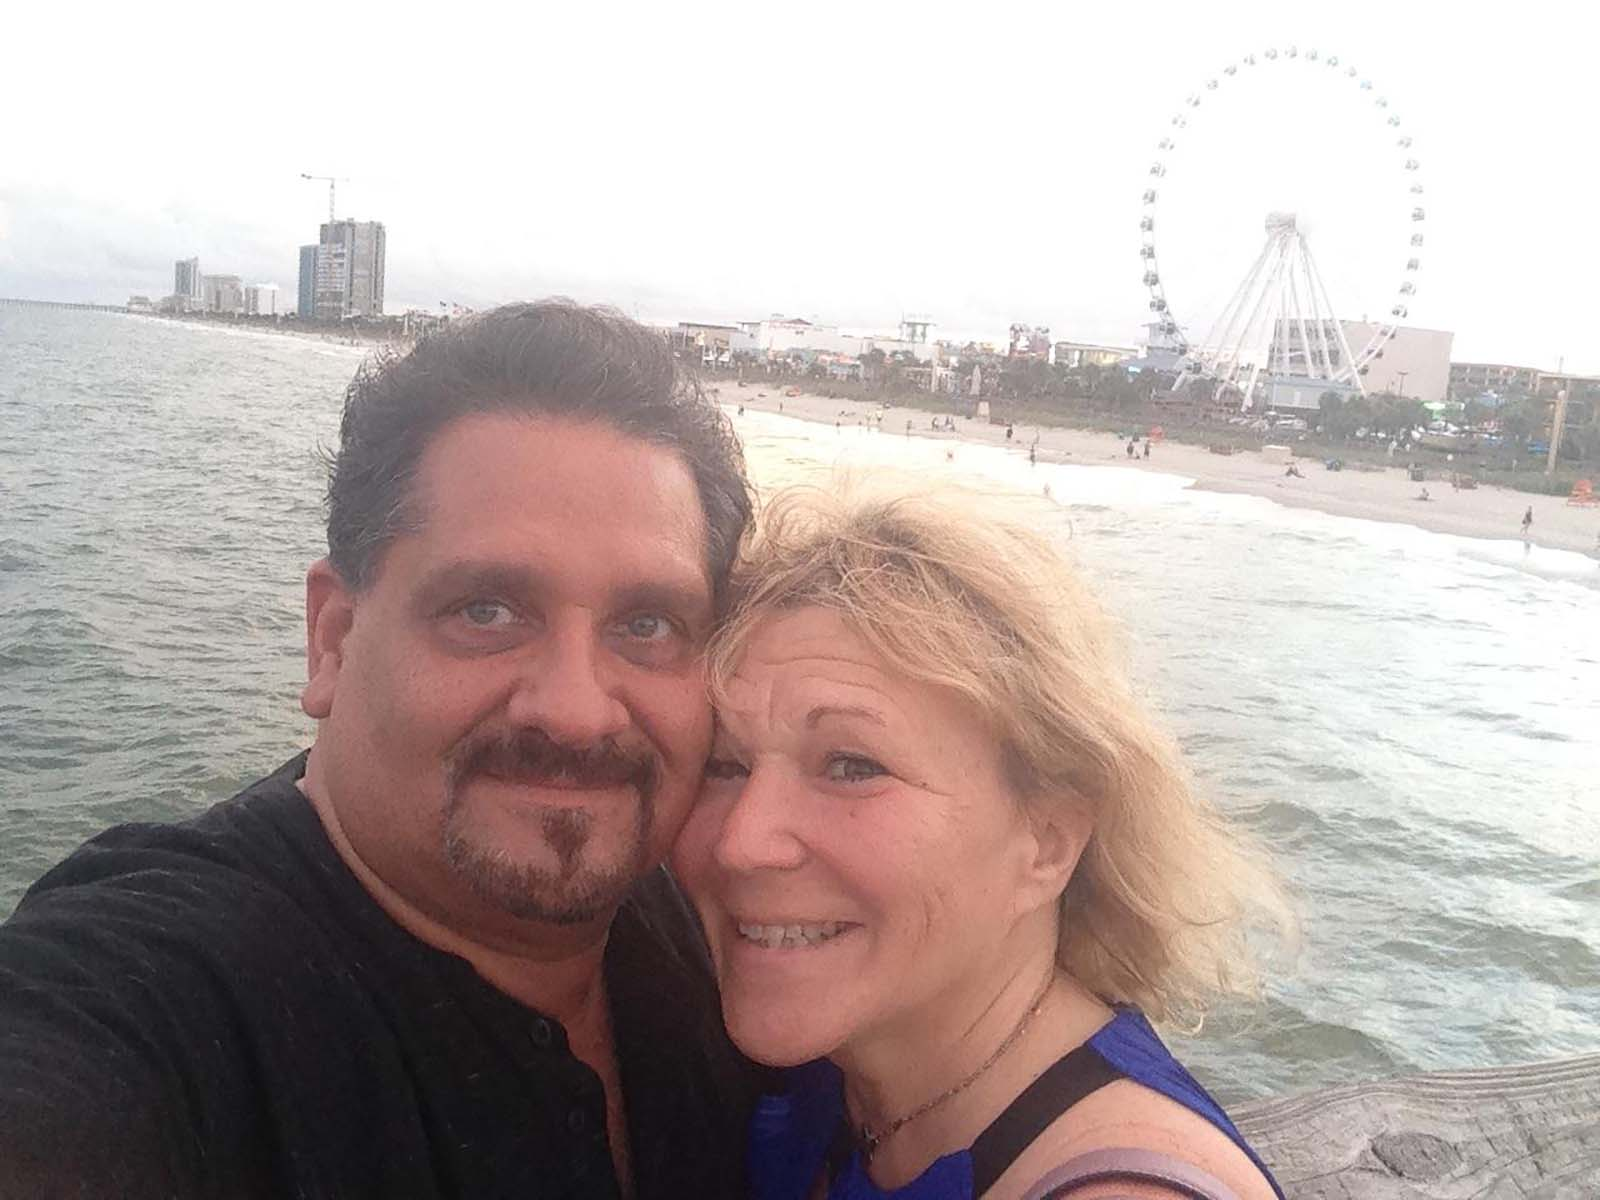 couple taking a selfie on pier with ferries wheel in the background